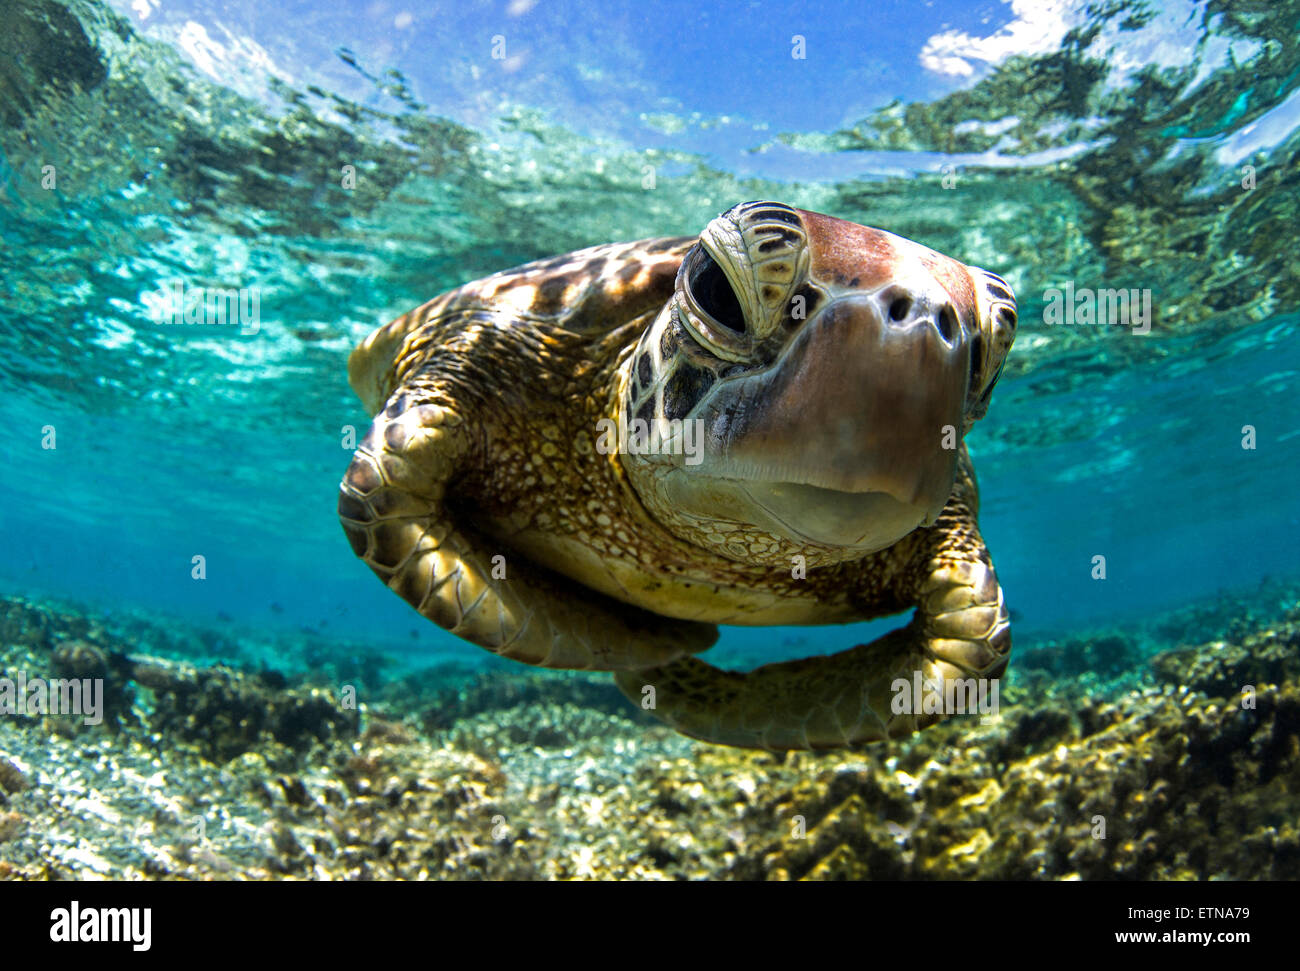 Close-up shot underwater of a turtle swimming in the reef, Queensland, Australia - Stock Image